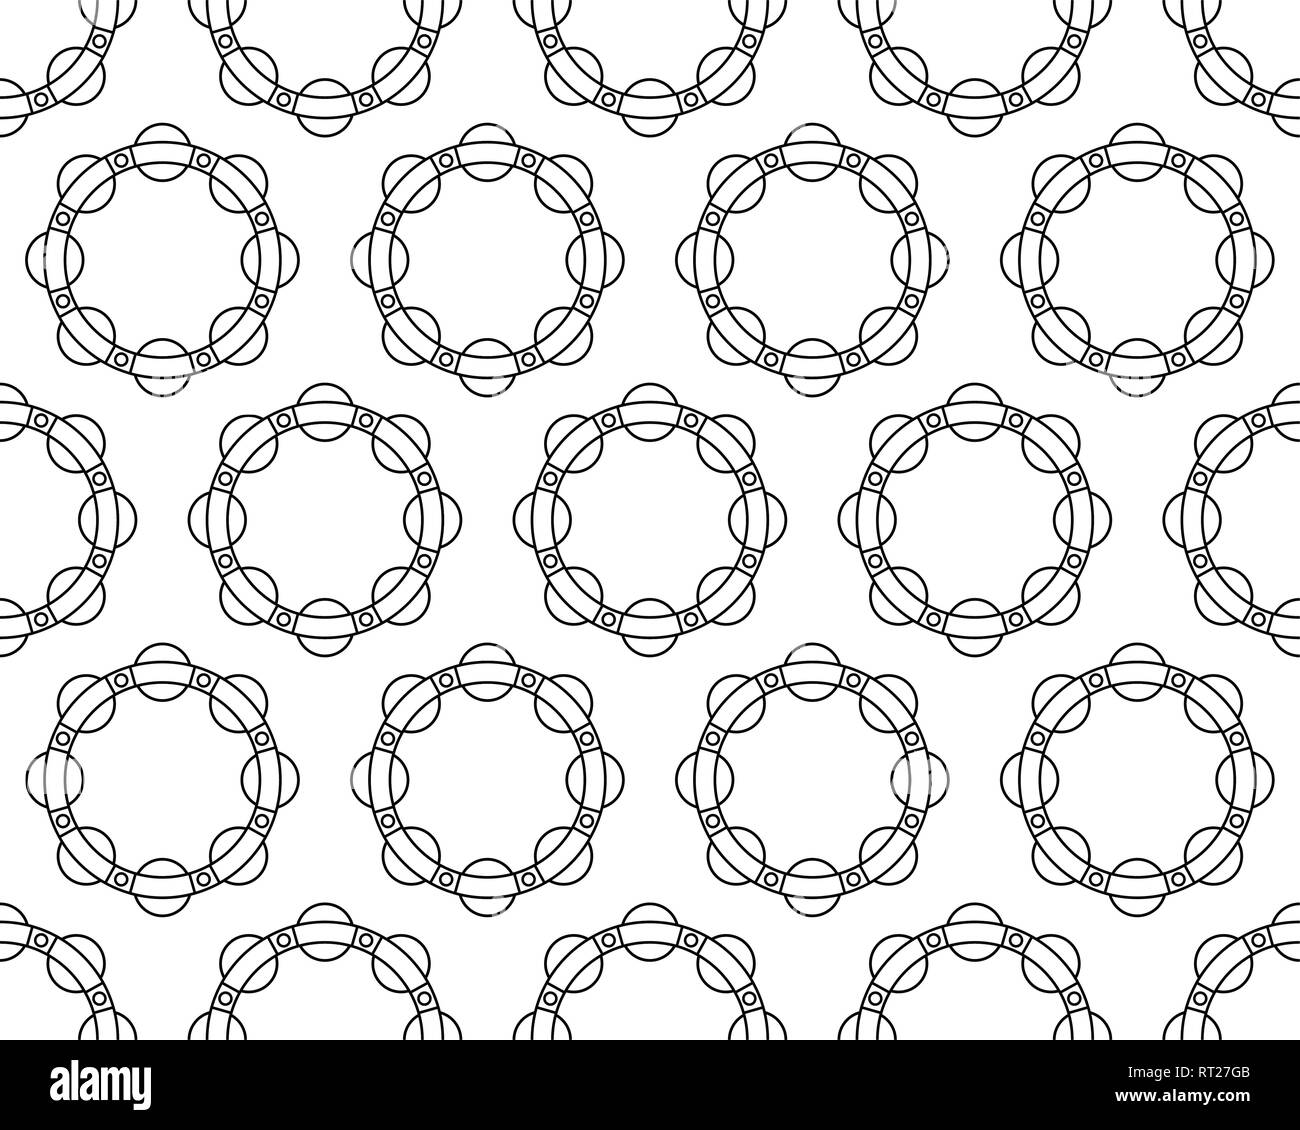 Seamless pattern of the contour ball bearing races - Stock Image